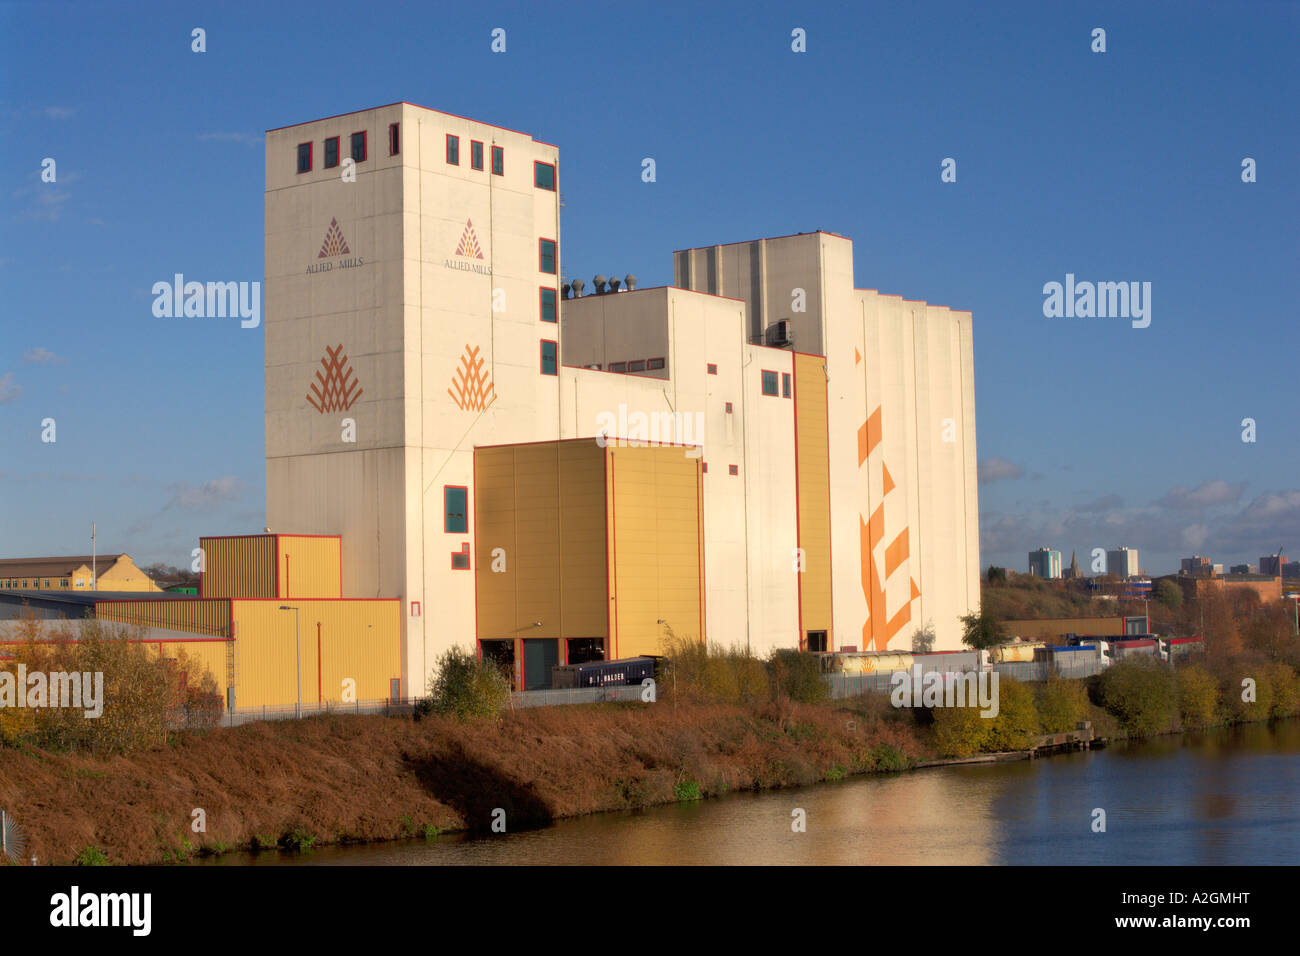 Allied Mills Flour Mills, part of Associated British Foods Plc., - Stock Image